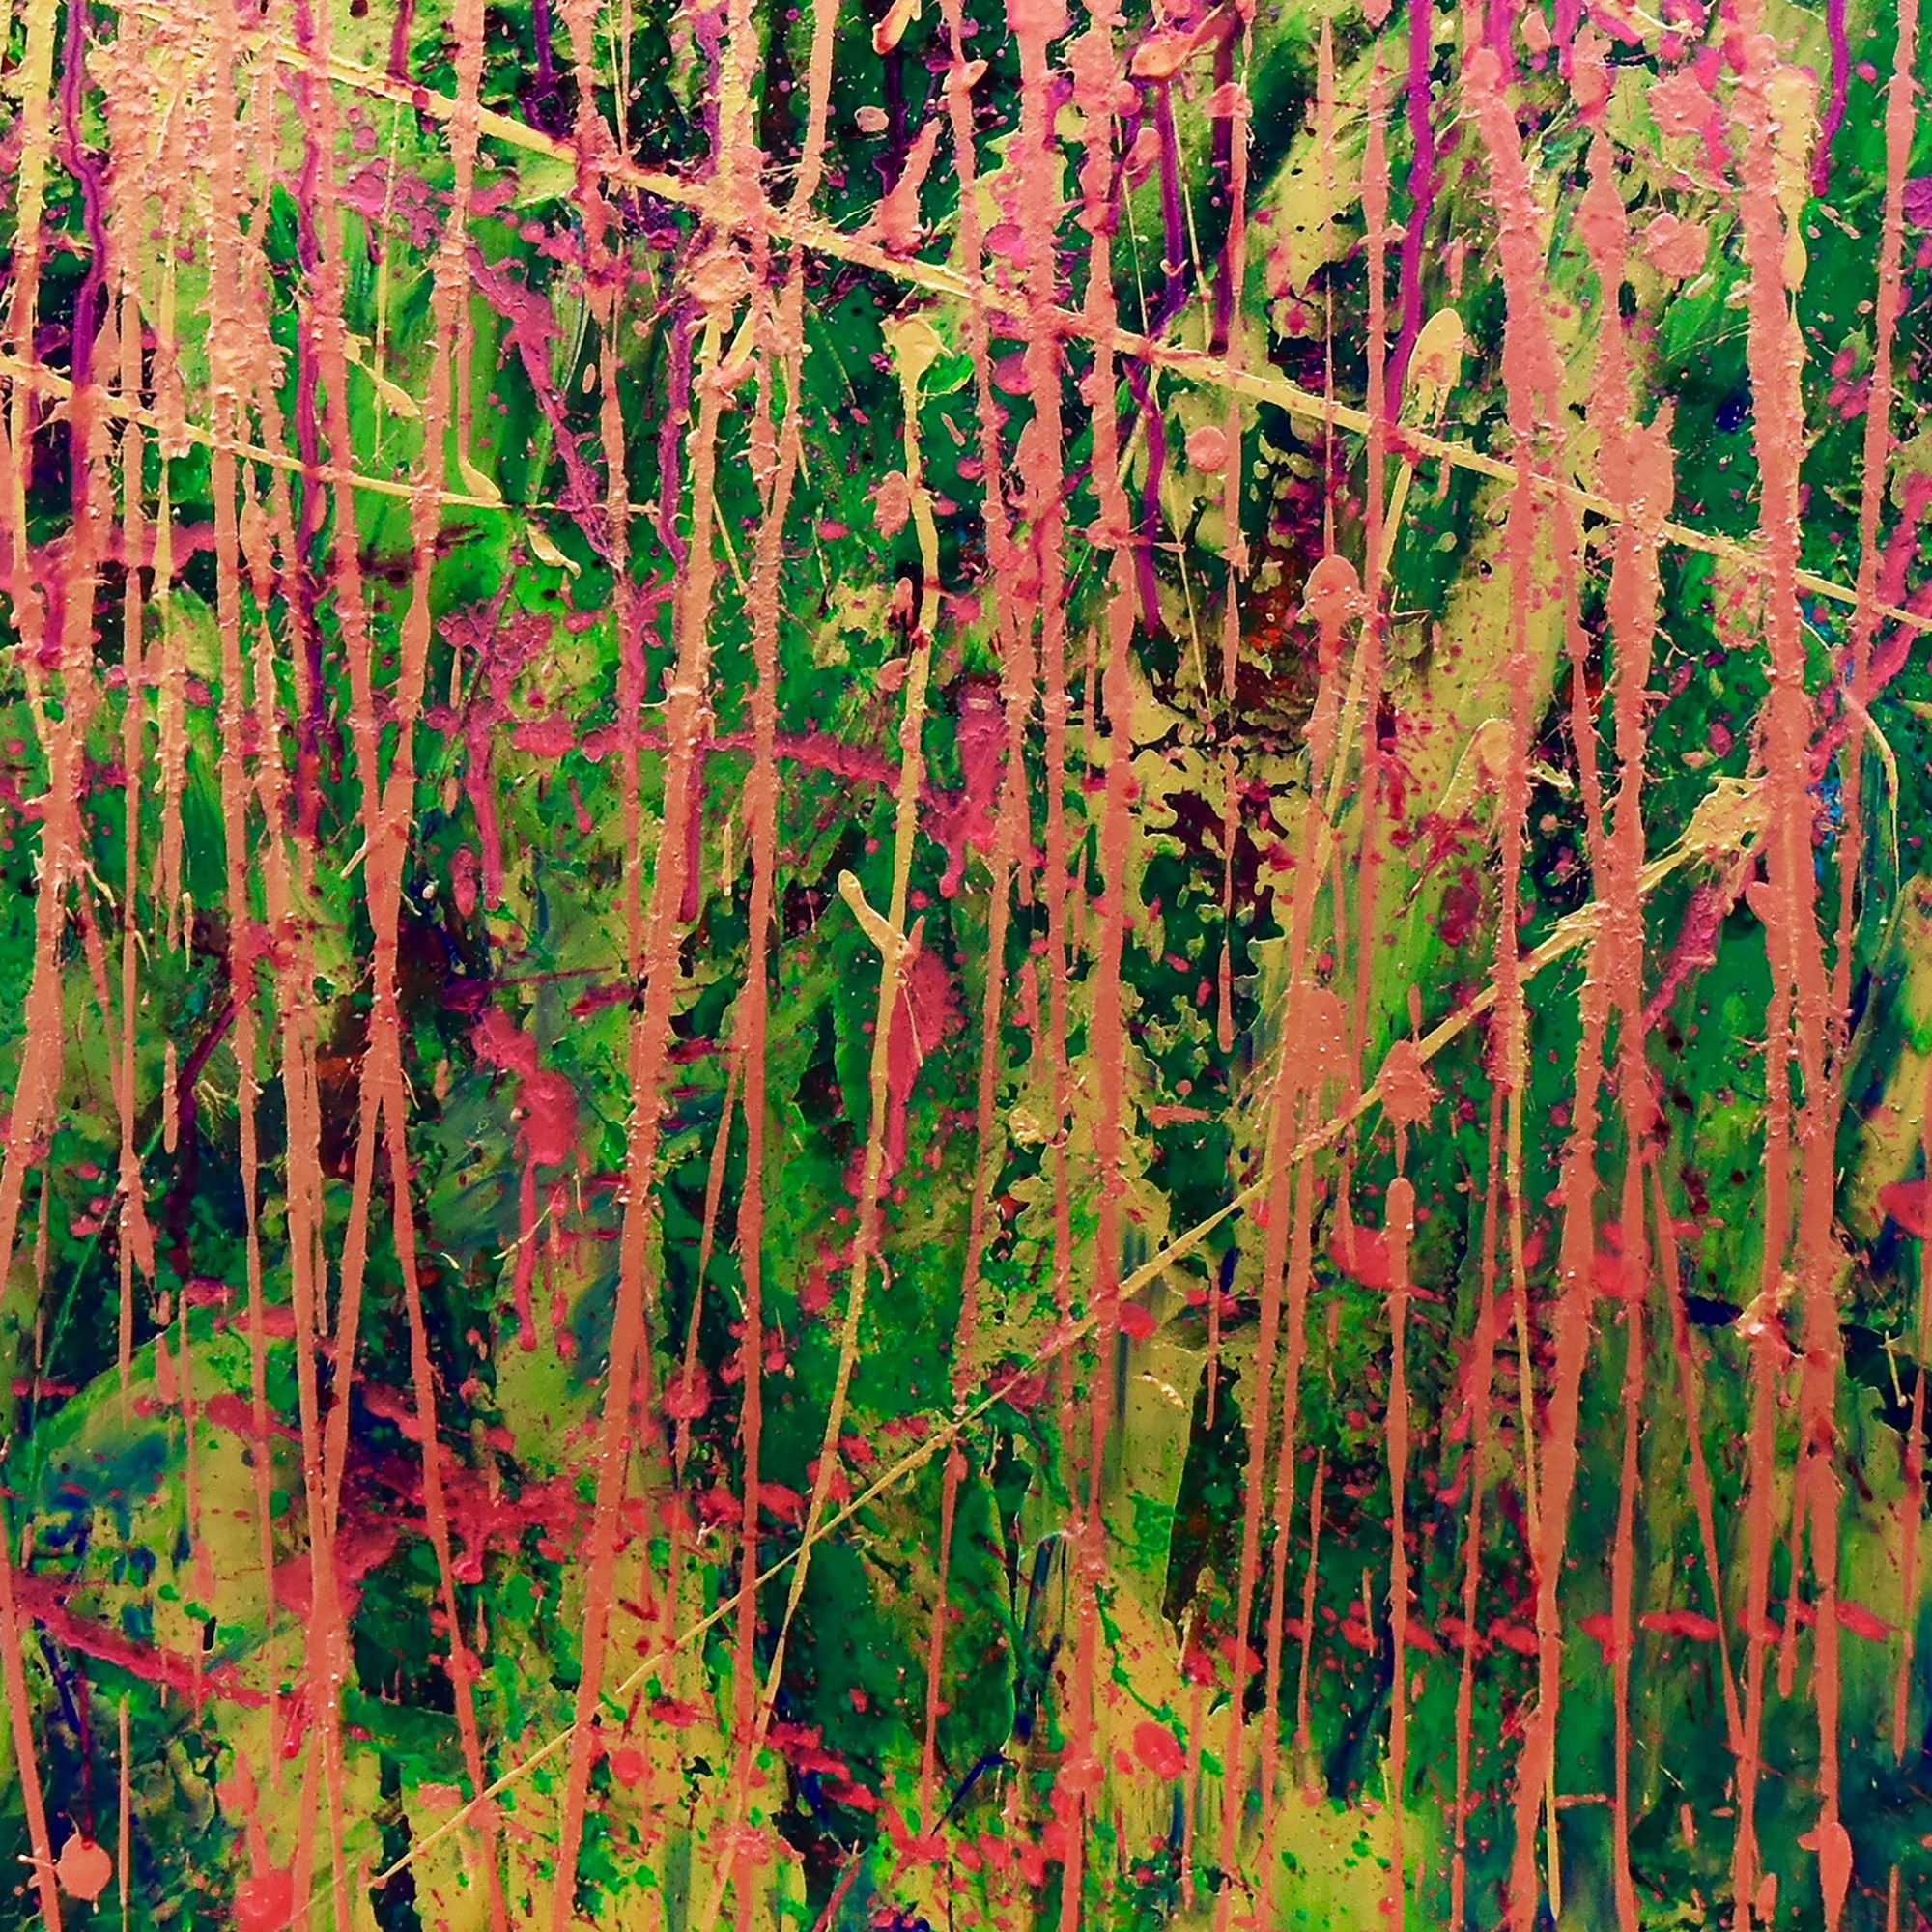 Detail - Golden Spectra (Forest chaos) by Nestor Toro